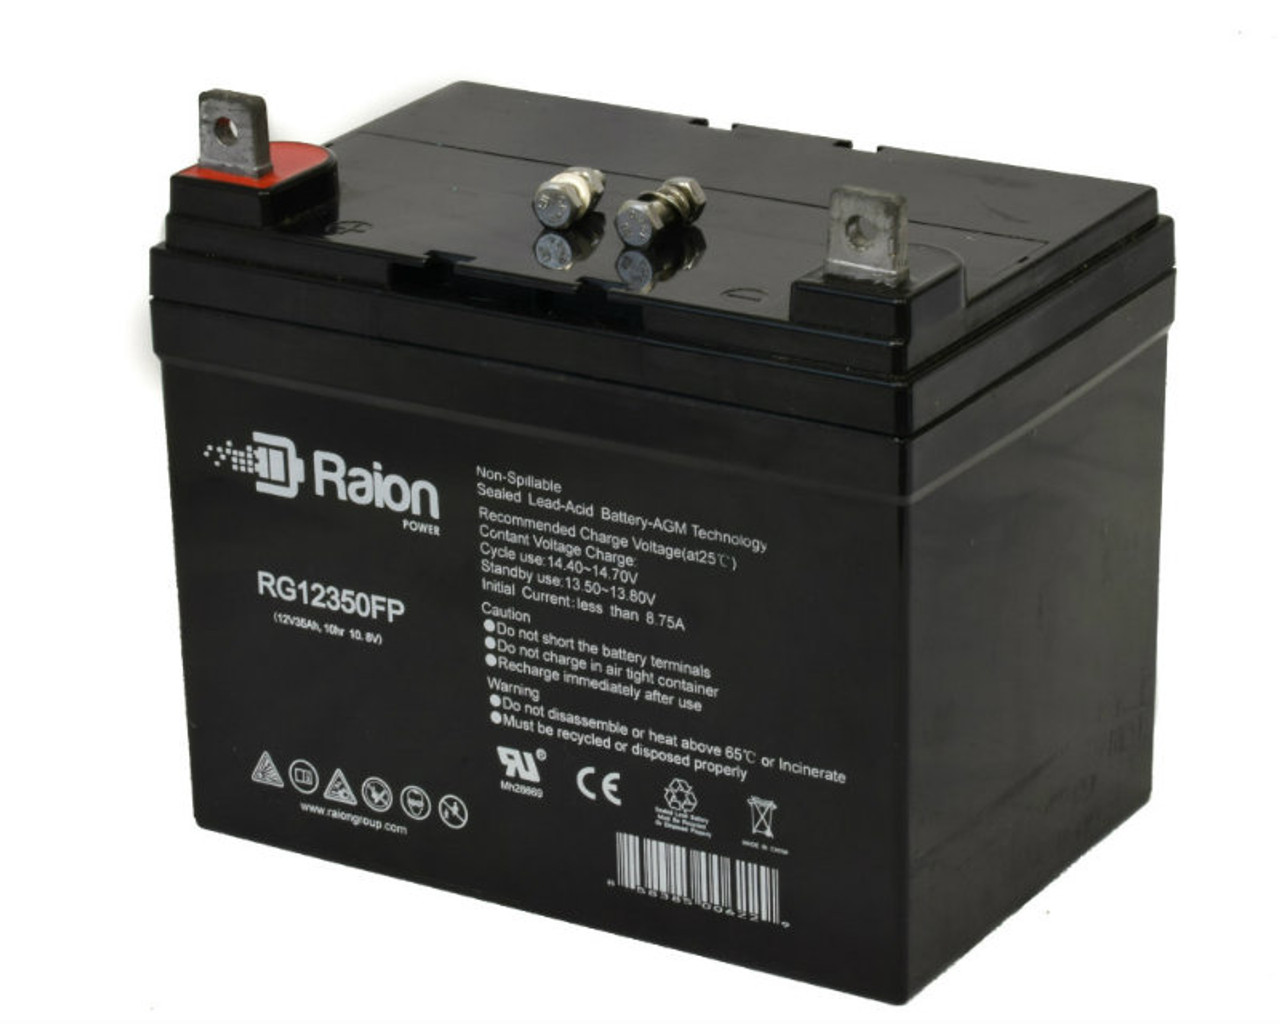 RG12350FP Sealed Lead Acid Battery Pack For Pride SC300 Mobility Scooter